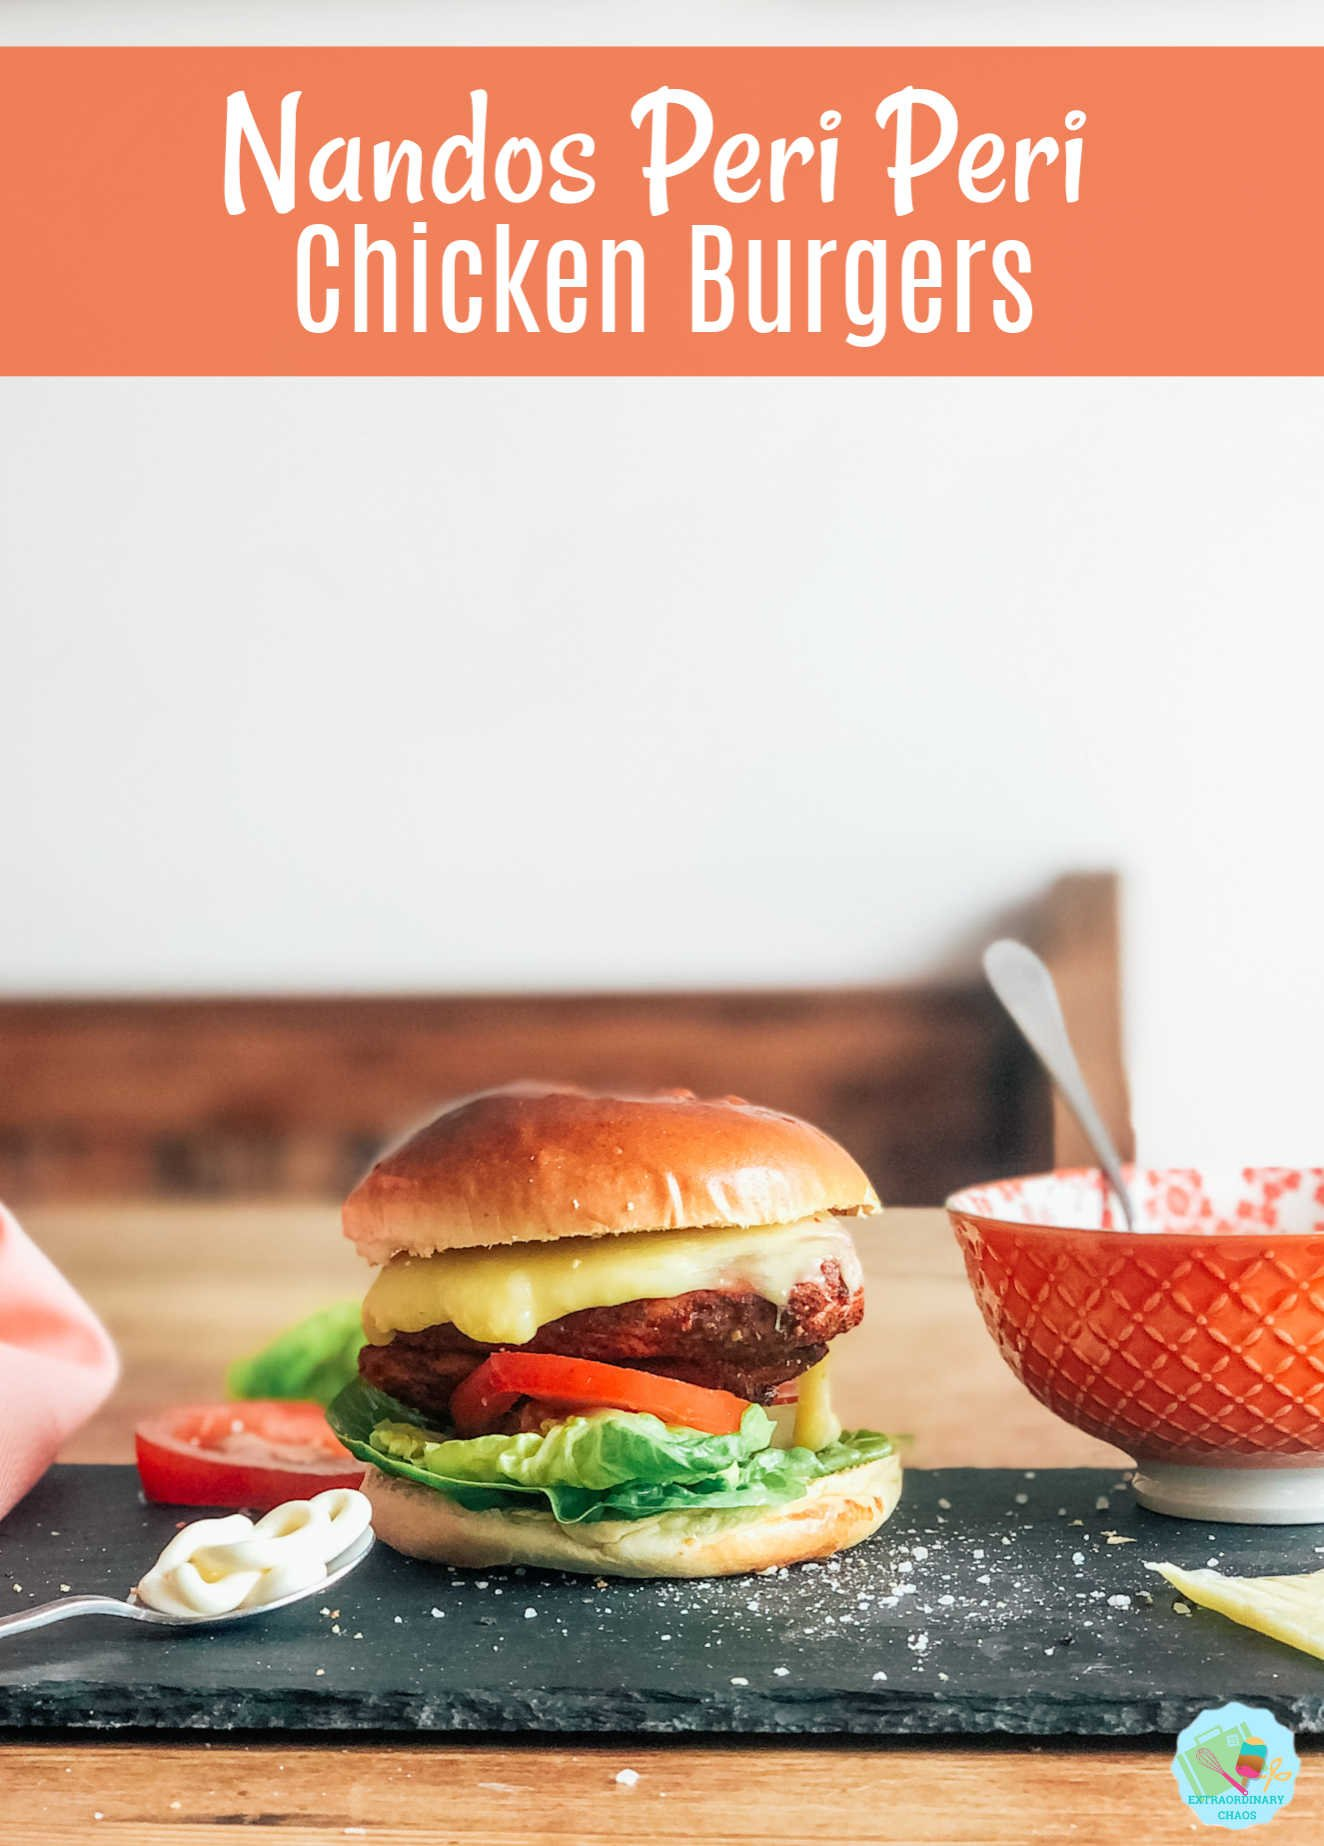 How to make an easy Nando's Peri Peri Chicken Burger at home